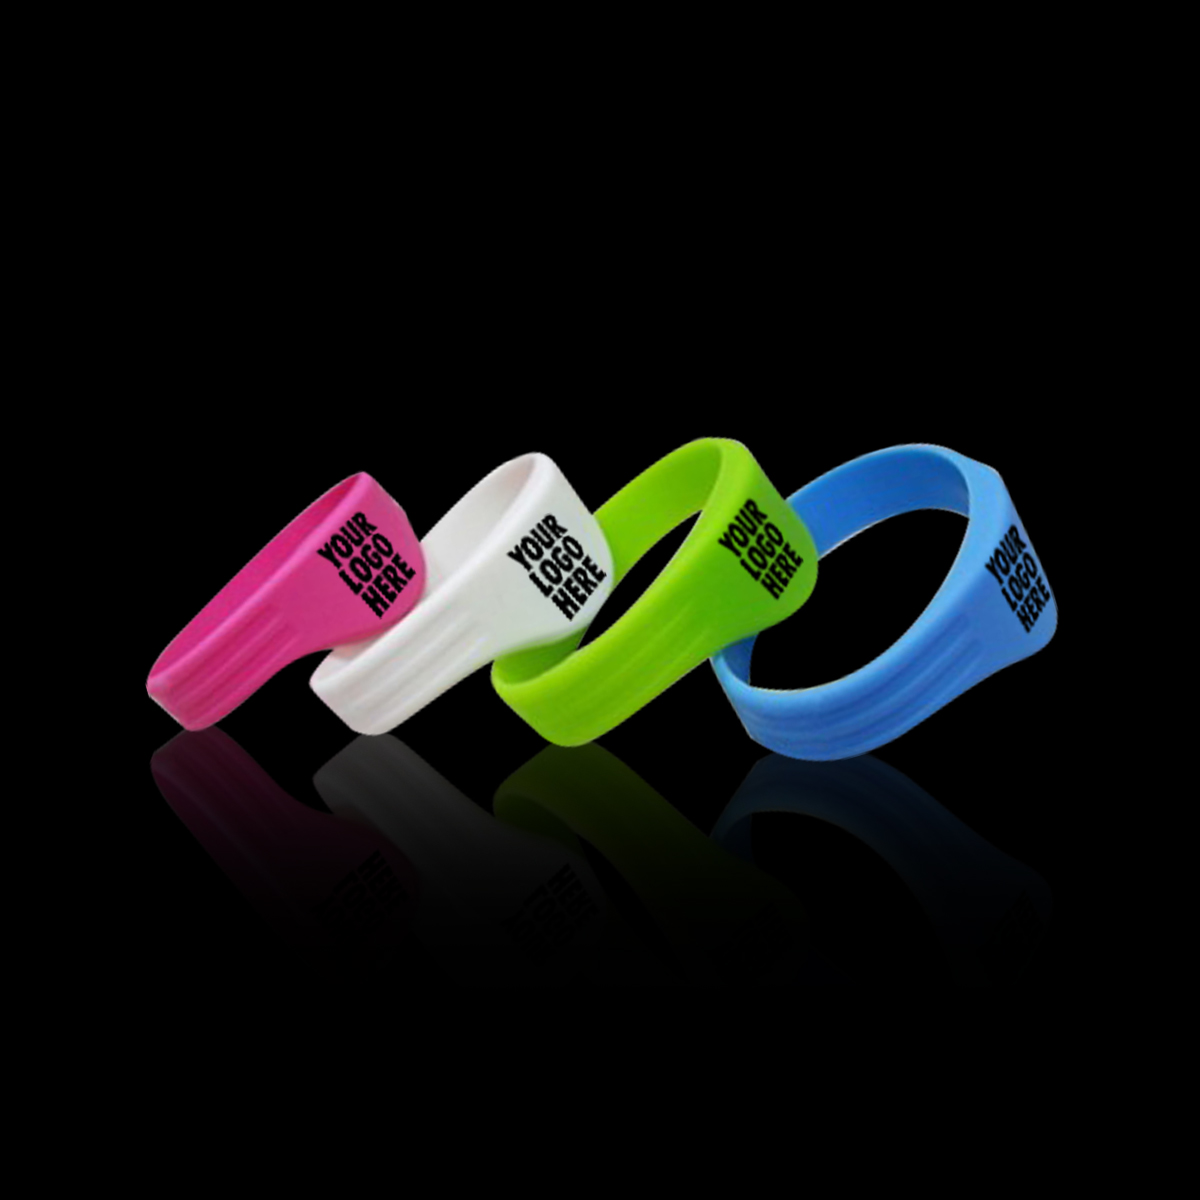 rfid wristbands, mifare wristbands,